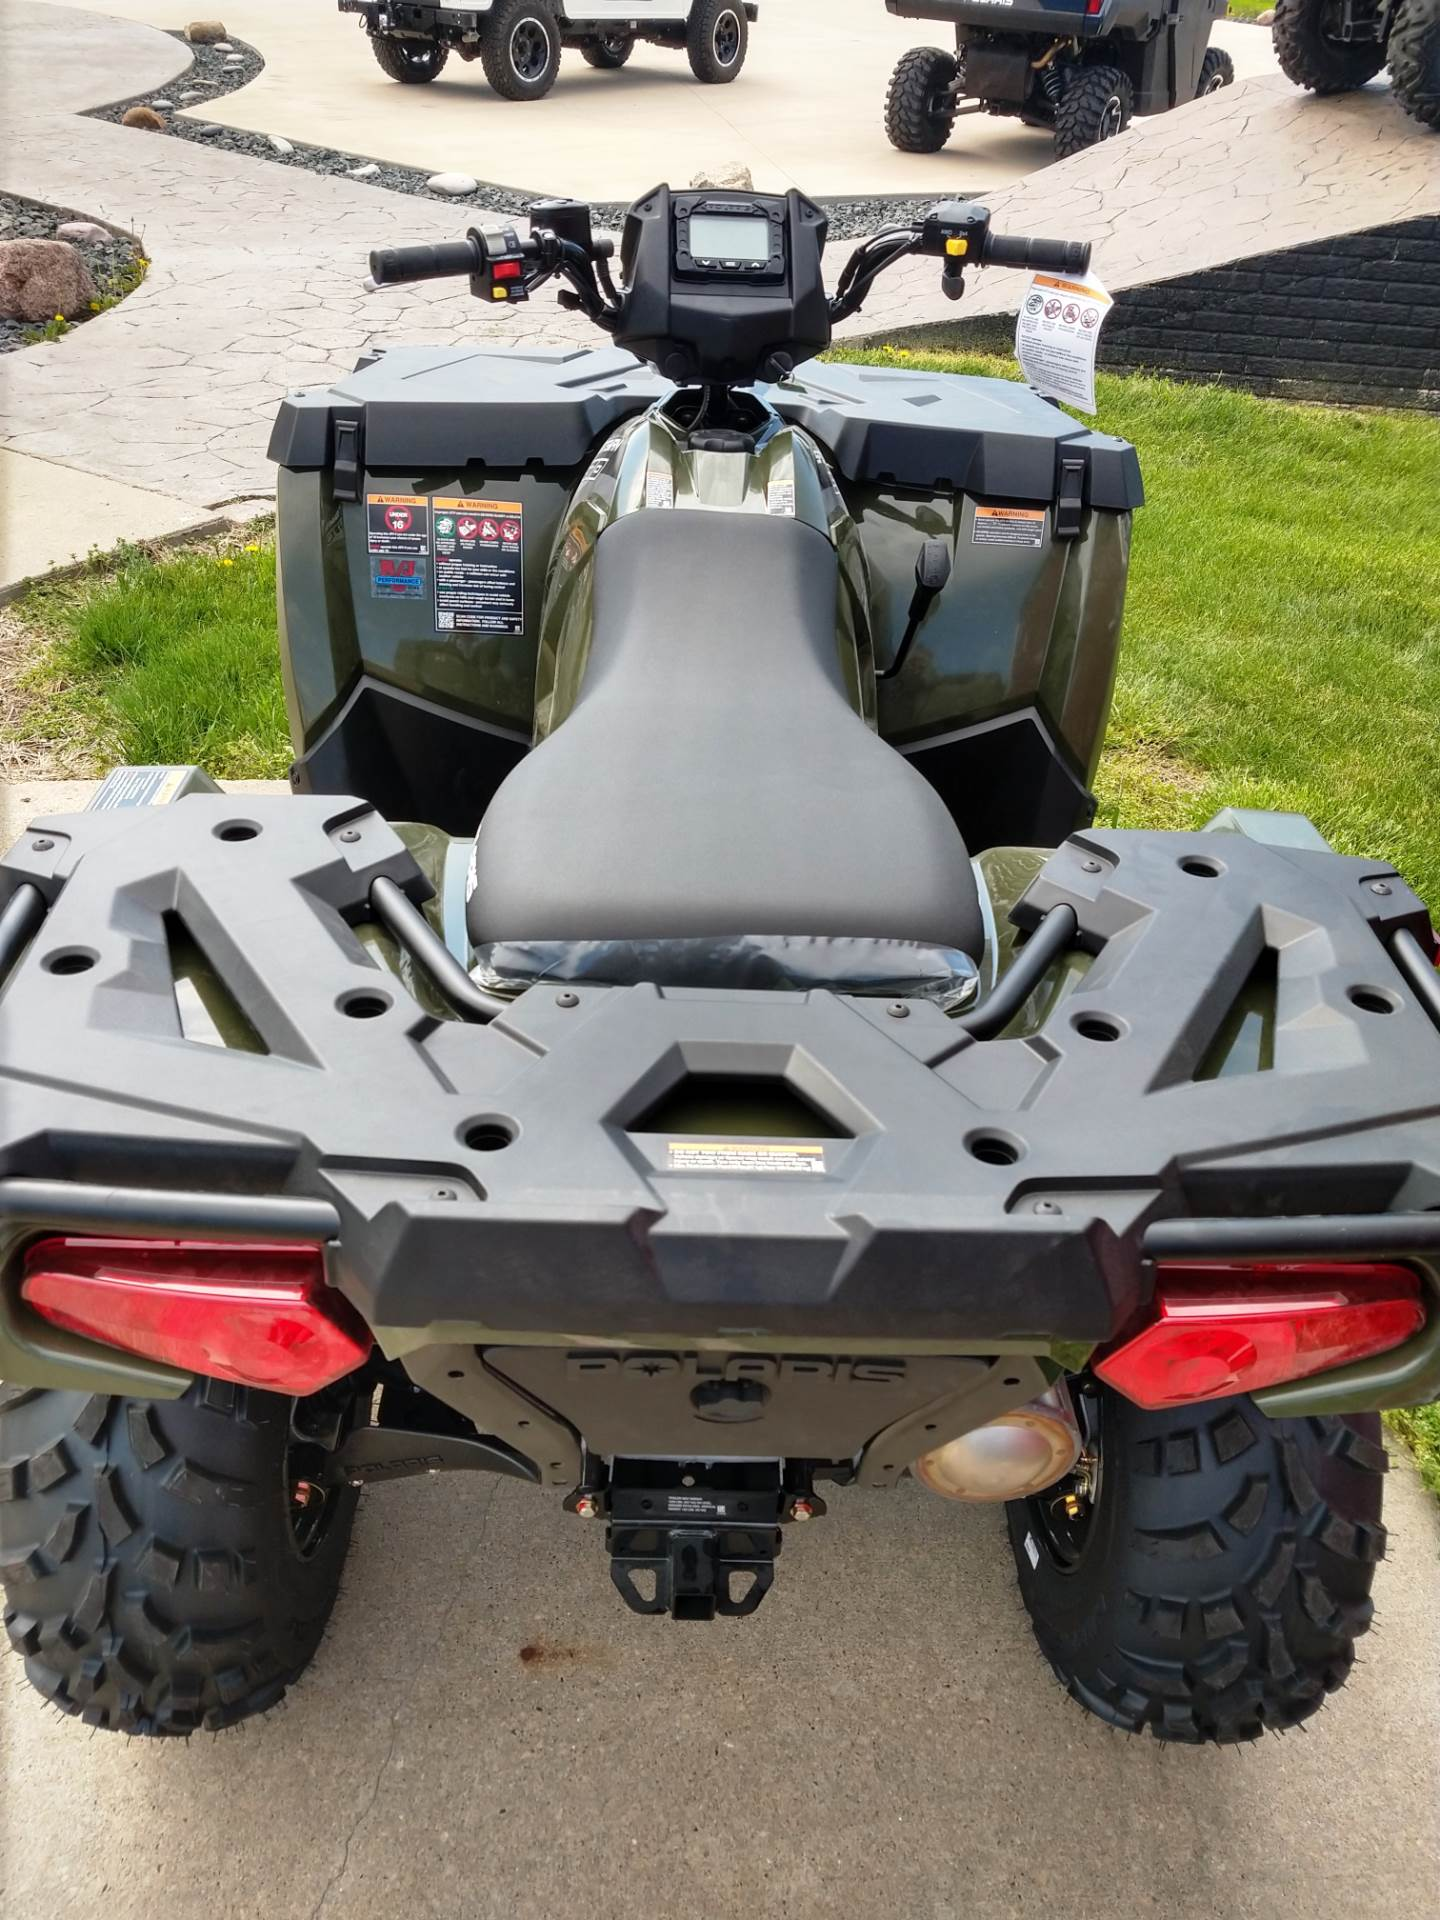 2019 Polaris Sportsman 570 EPS in Ottumwa, Iowa - Photo 9